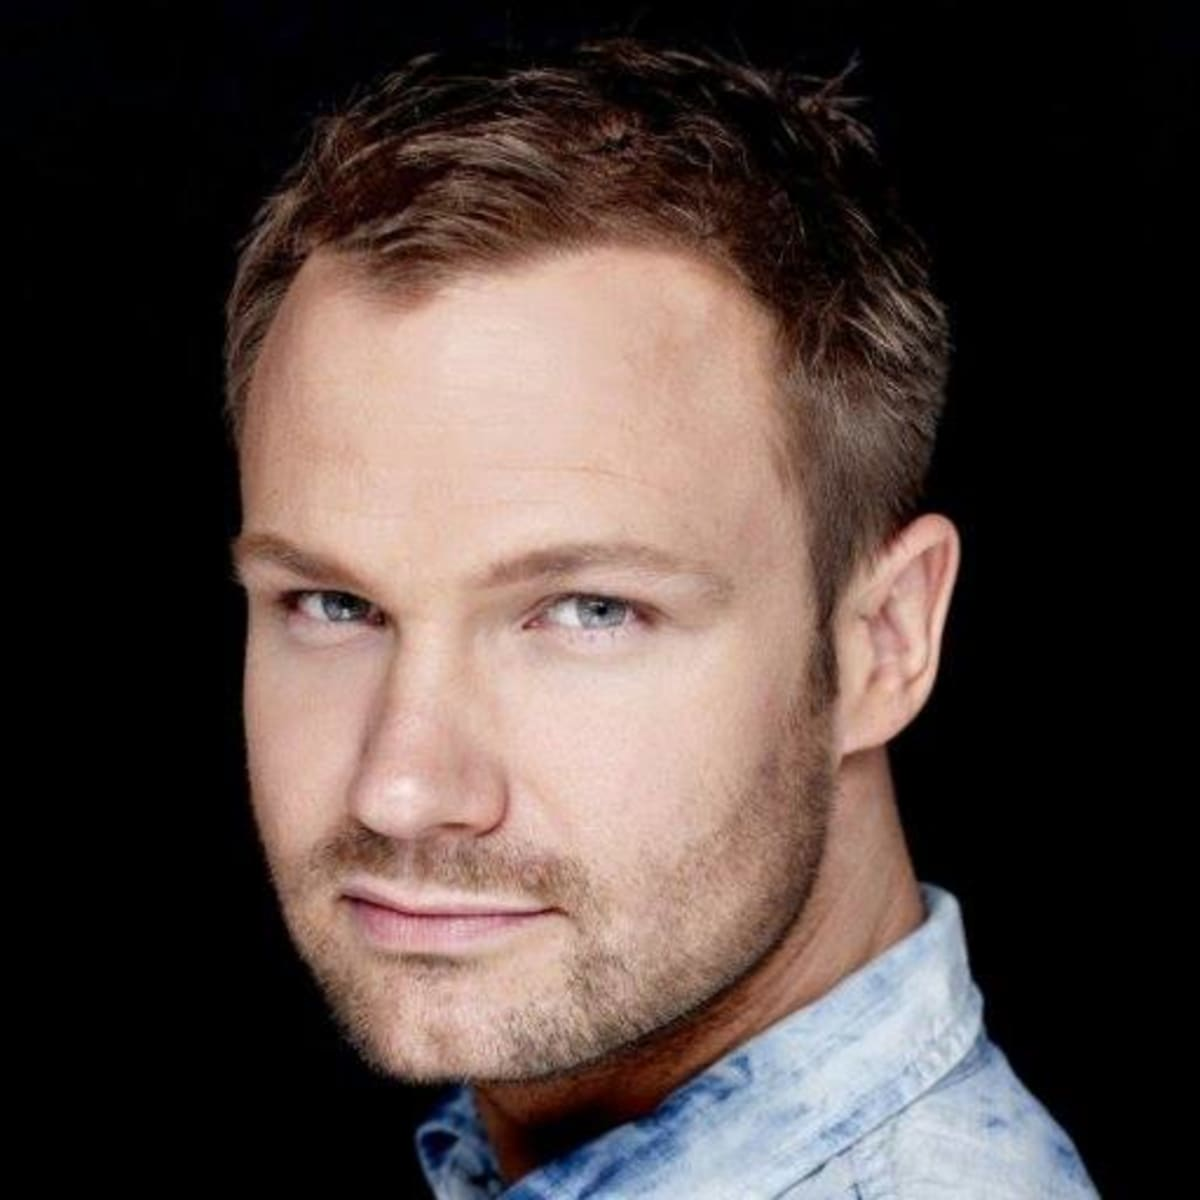 BREAKING: Frontman of Dash Berlin Splits from Group - EDM.com - The Latest  Electronic Dance Music News, Reviews & Artists